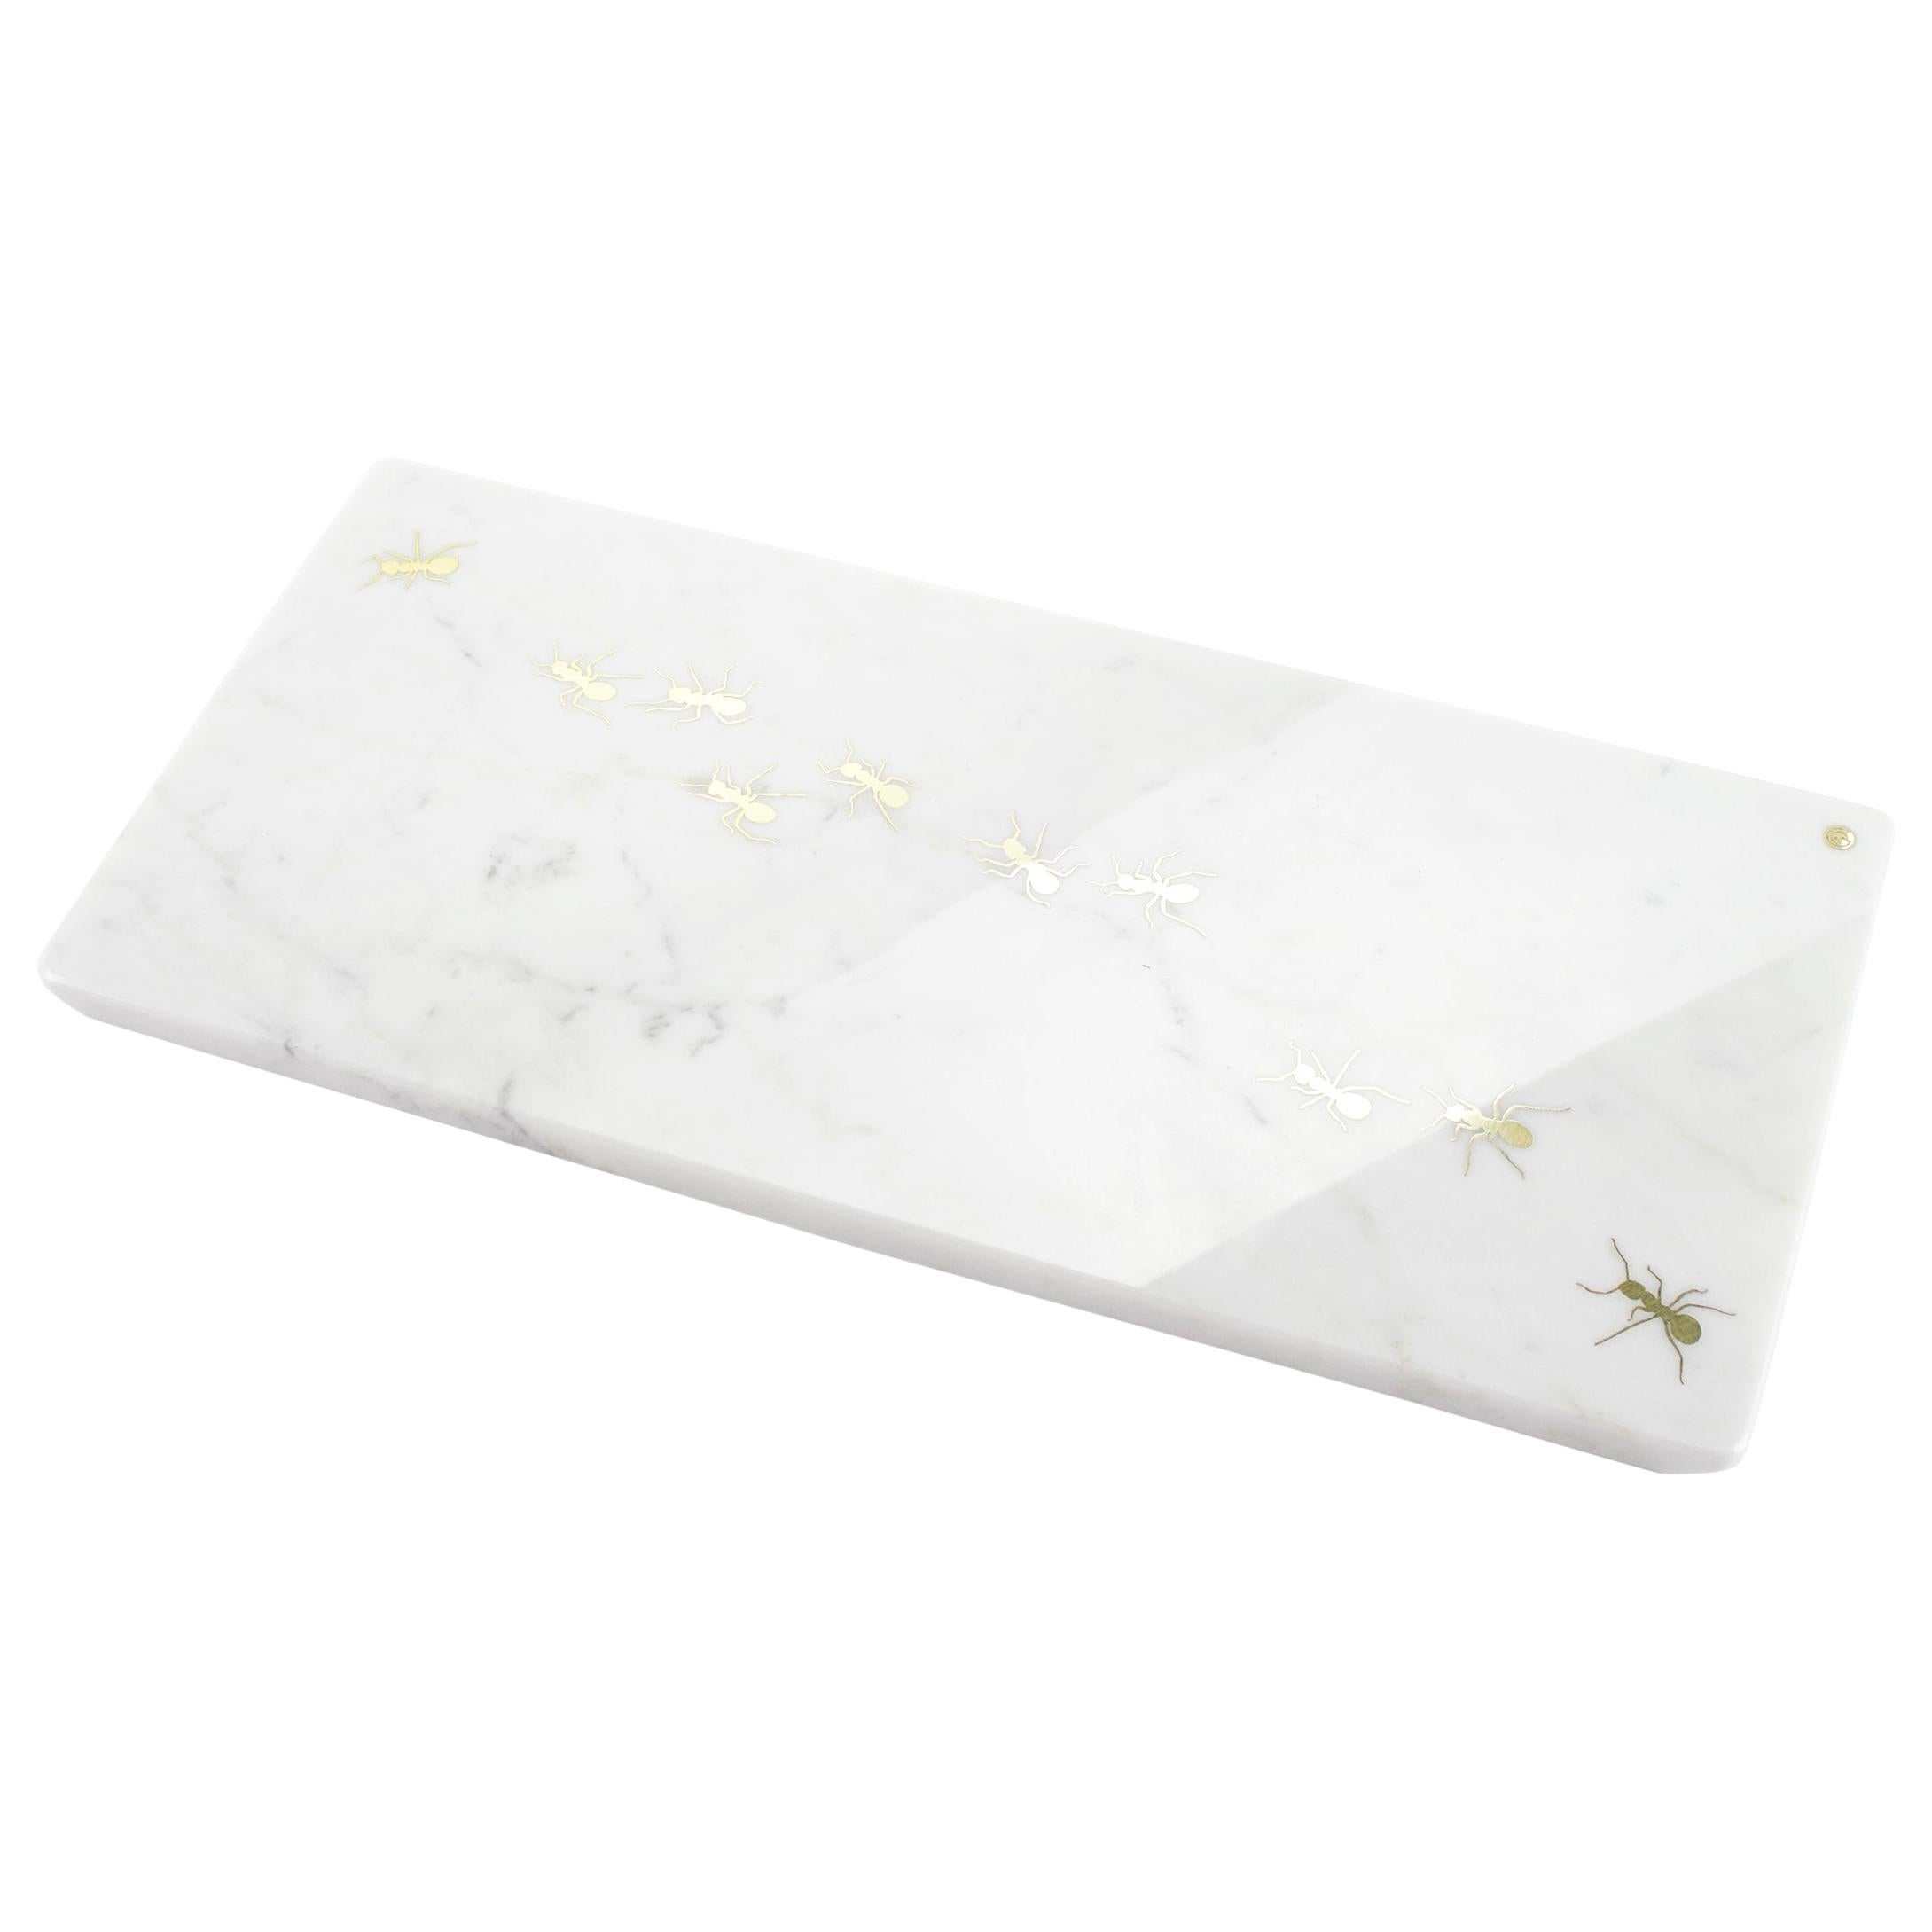 Centerpiece, Serving Plate in Carrara Marble Made in Italy by Pieruga Marble